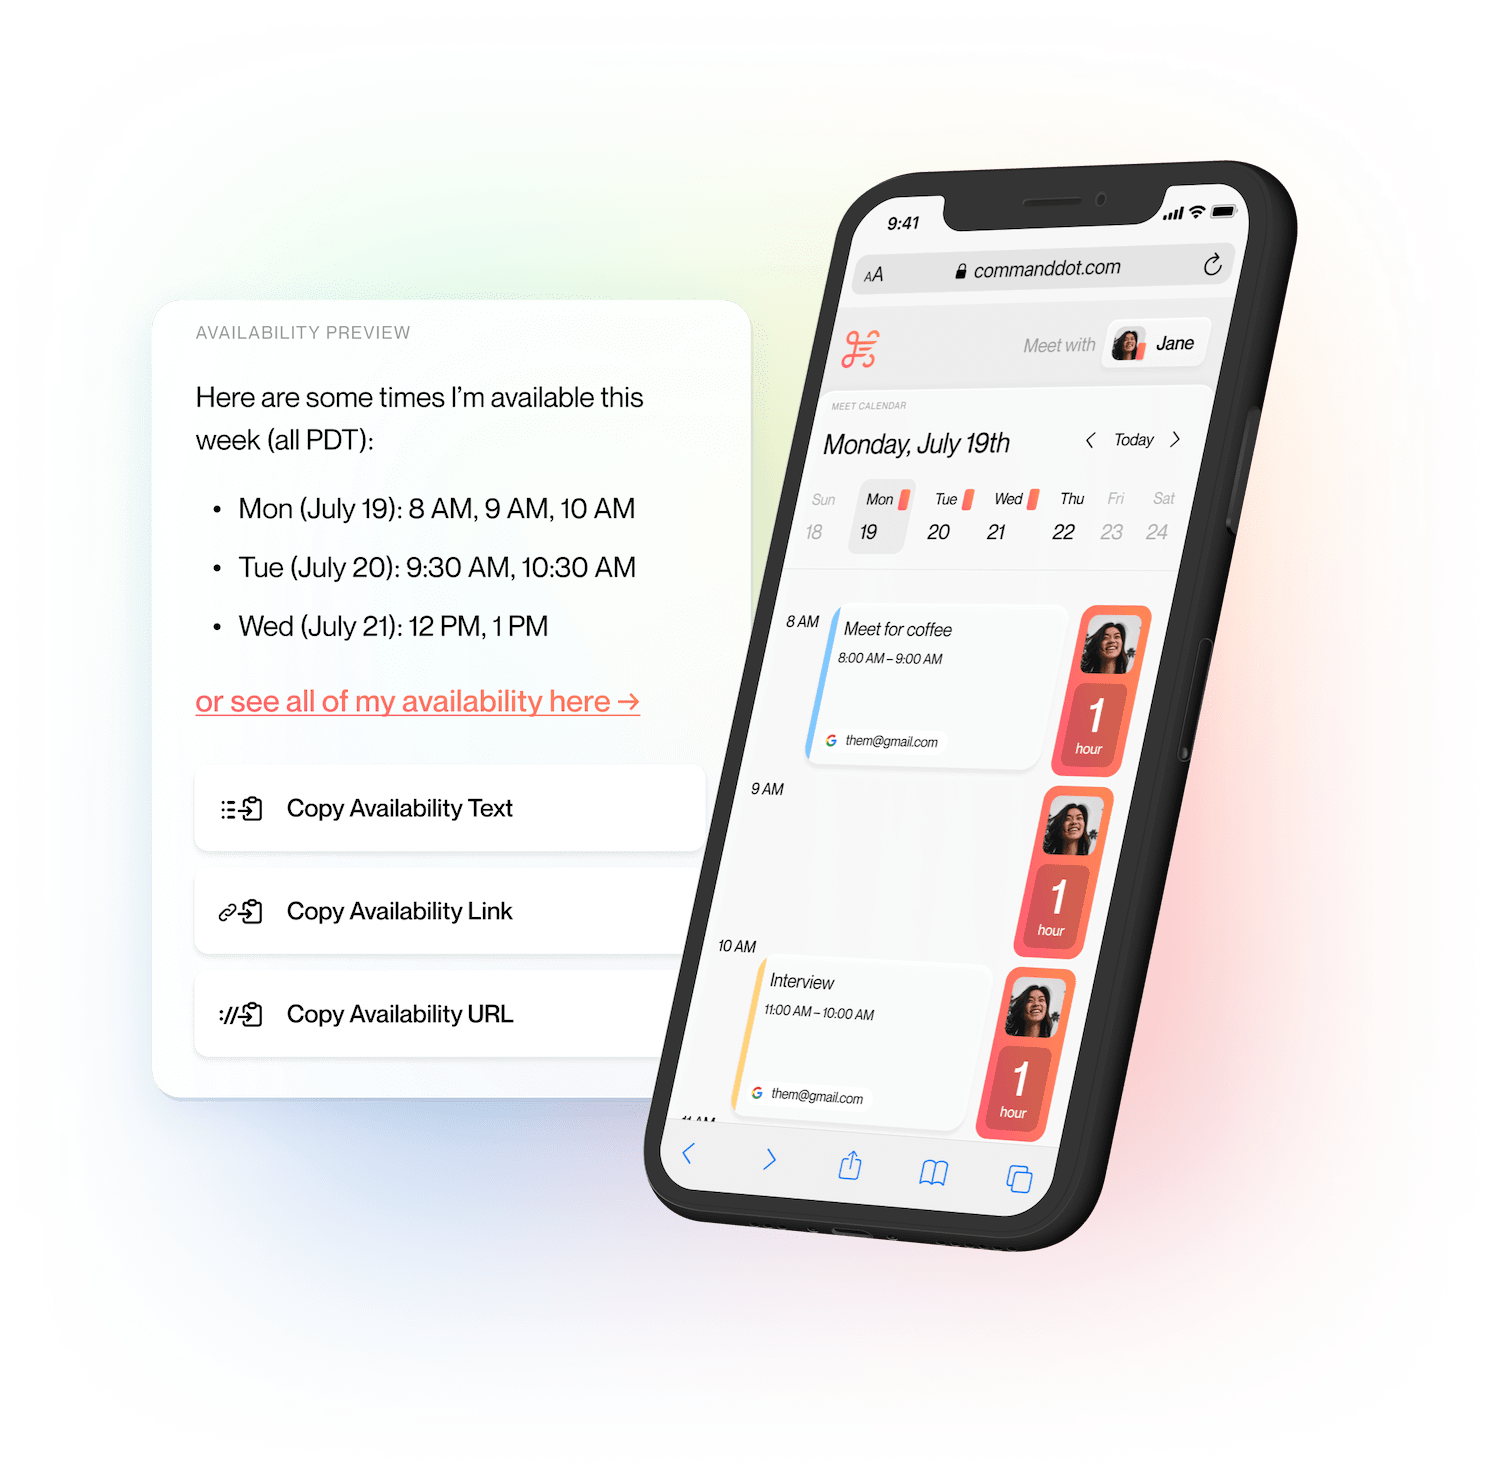 CommandDot showing Availability with Scheduling UI on phone